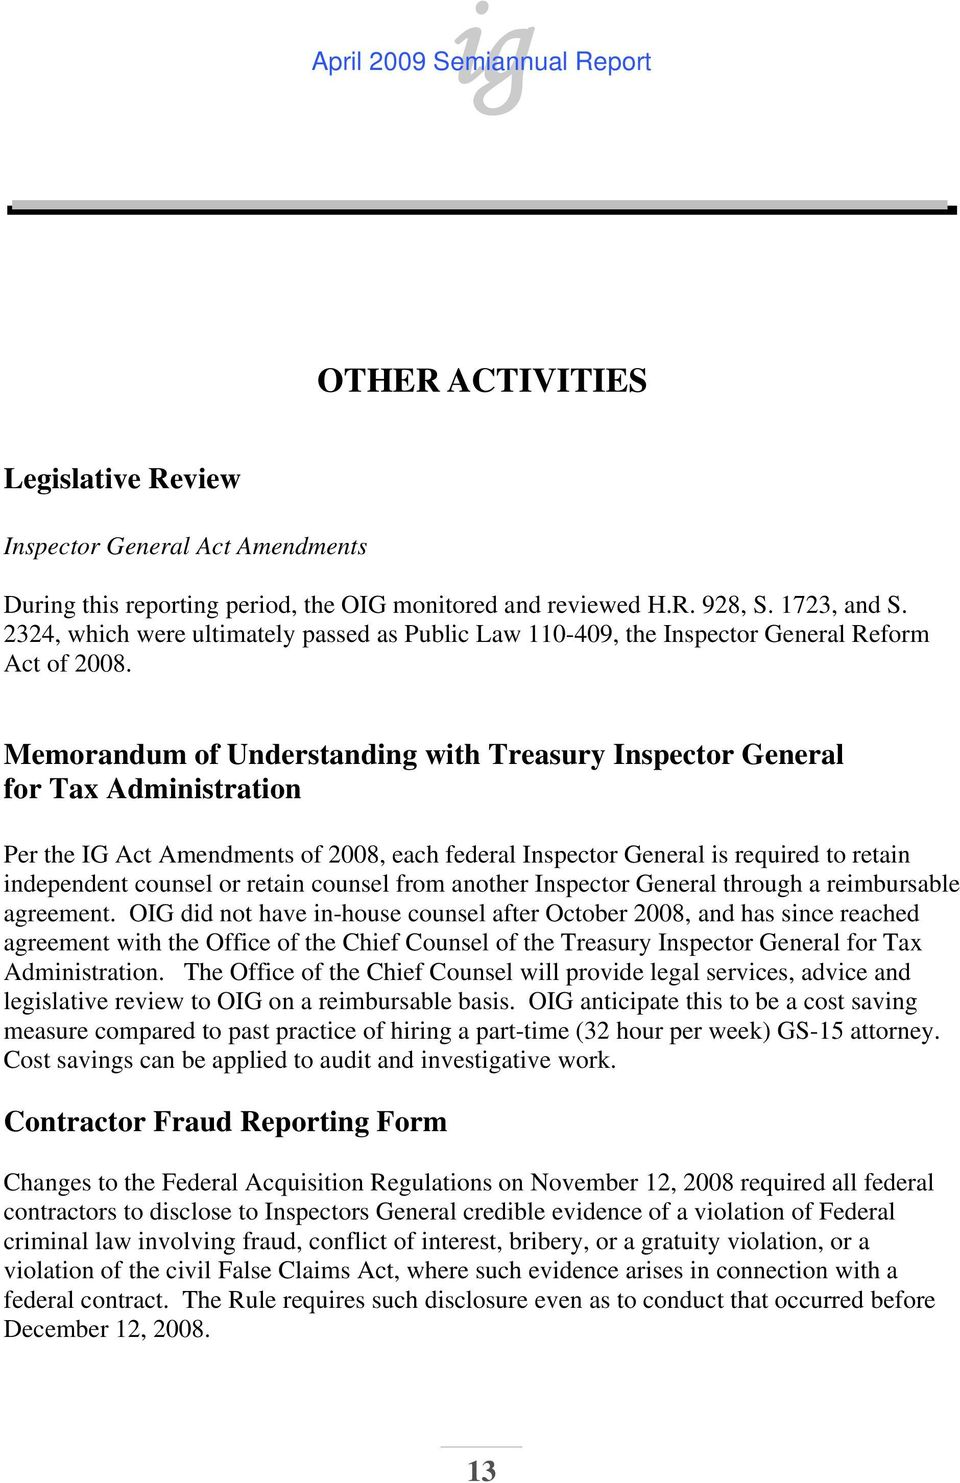 Memorandum of Understanding with Treasury Inspector General for Tax Administration Per the IG Act Amendments of 2008, each federal Inspector General is required to retain independent counsel or